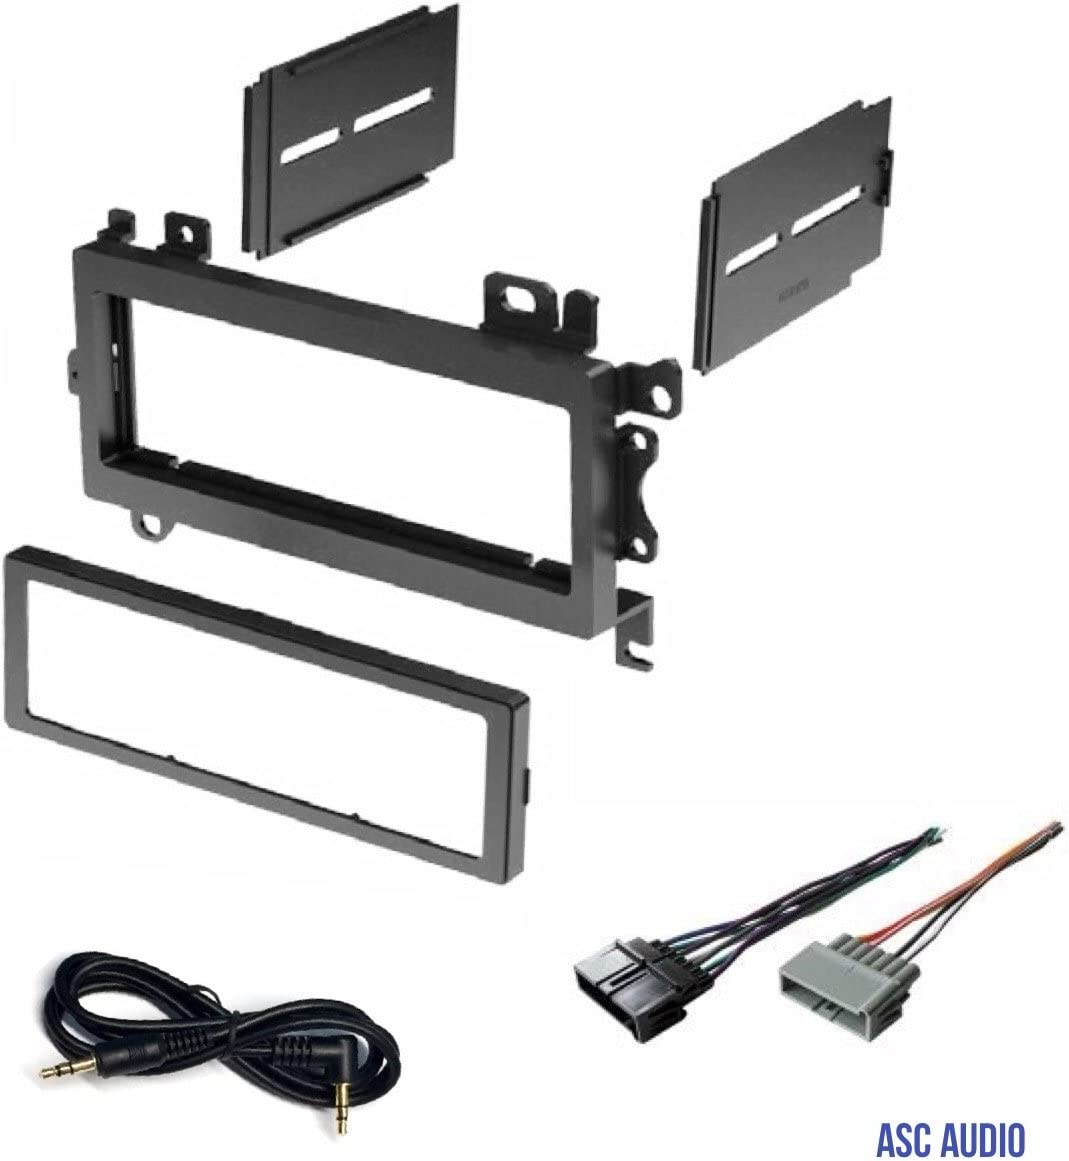 Amazon.com: Car Stereo Dash Kit and Wire Harness for Installing a New  Single Din Radio for 1997-2001 Jeep Cherokee, 1992-1998 Jeep Grand  Cherokee, 1997-2002 Jeep Wrangler: Car ElectronicsAmazon.com